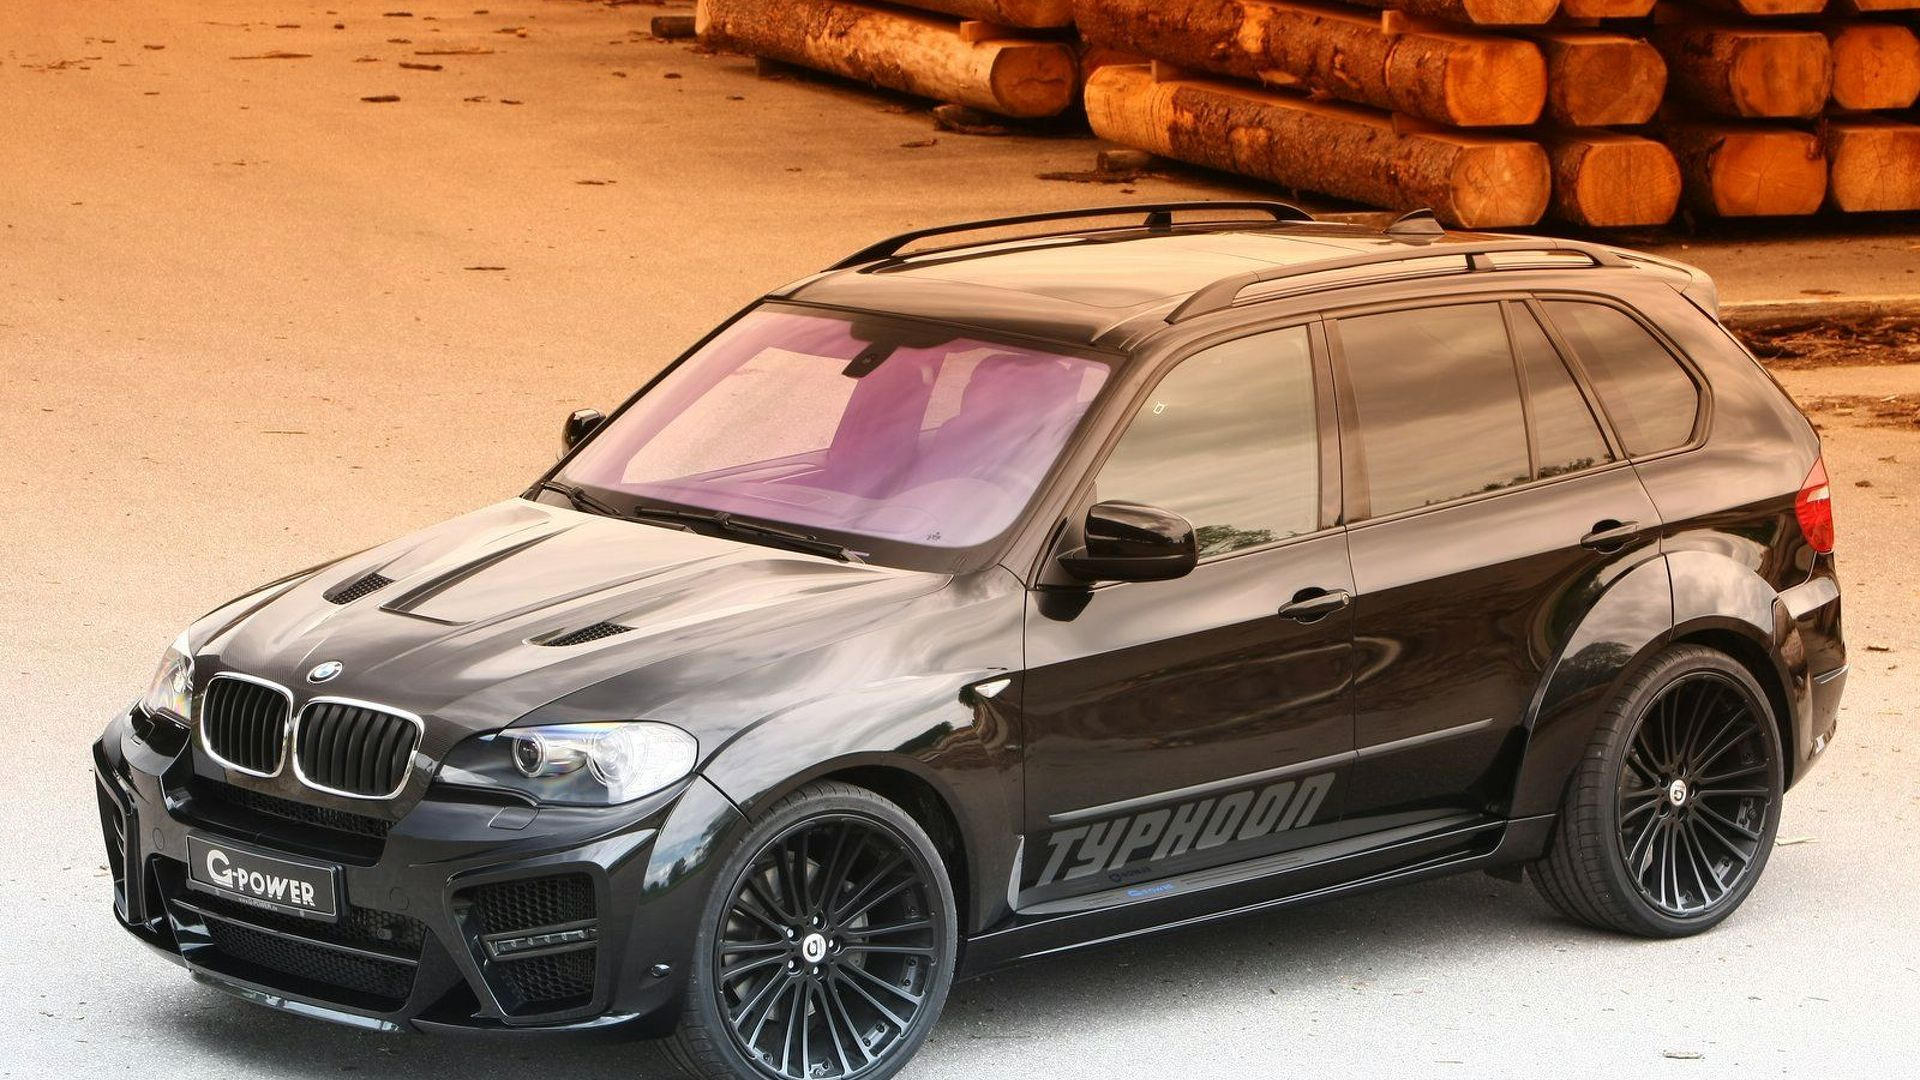 G Power Typhoon Black Pearl Based On Bmw X5 E70 With 625hp